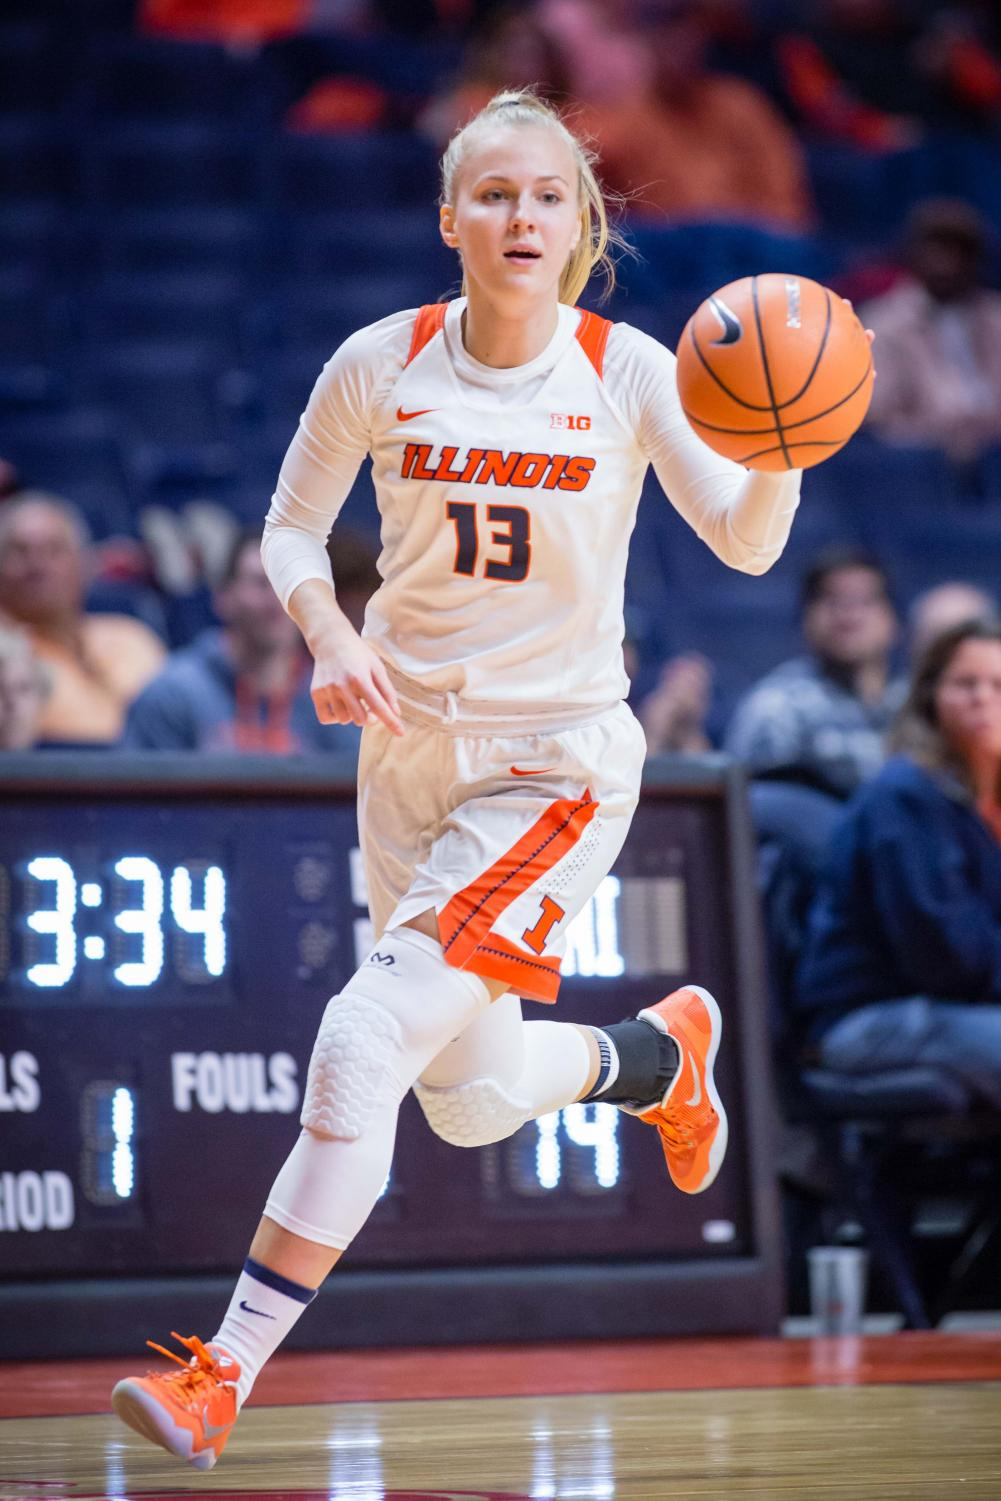 Illinois guard Petra Holešínská dribbles the ball down the floor during the game against Fort Wayne at the State Farm Center on Nov. 10, 2017. The Illini won 64-50.